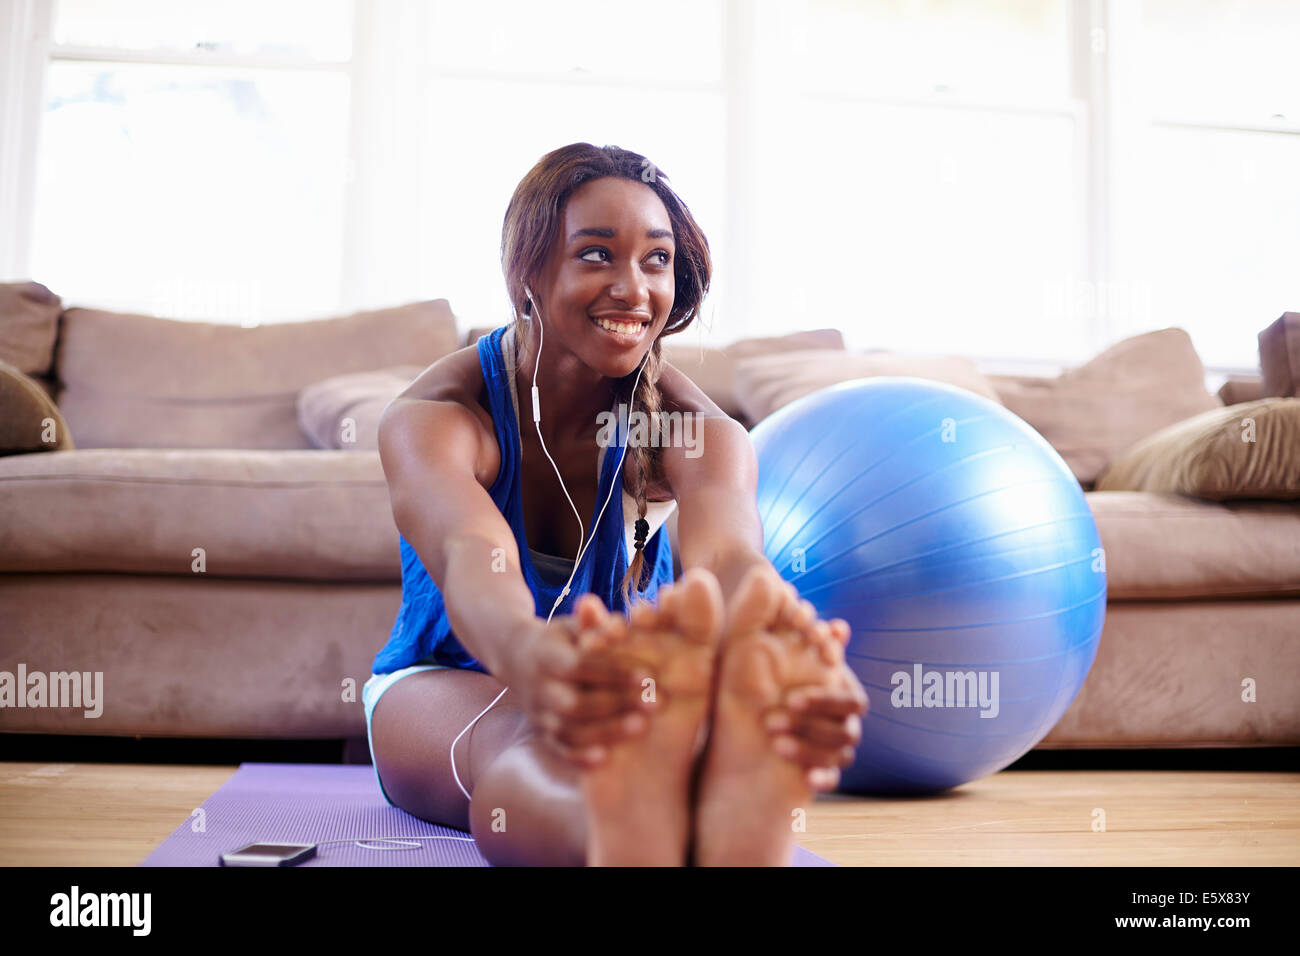 Young woman exercising and touching toes on sitting room floor - Stock Image